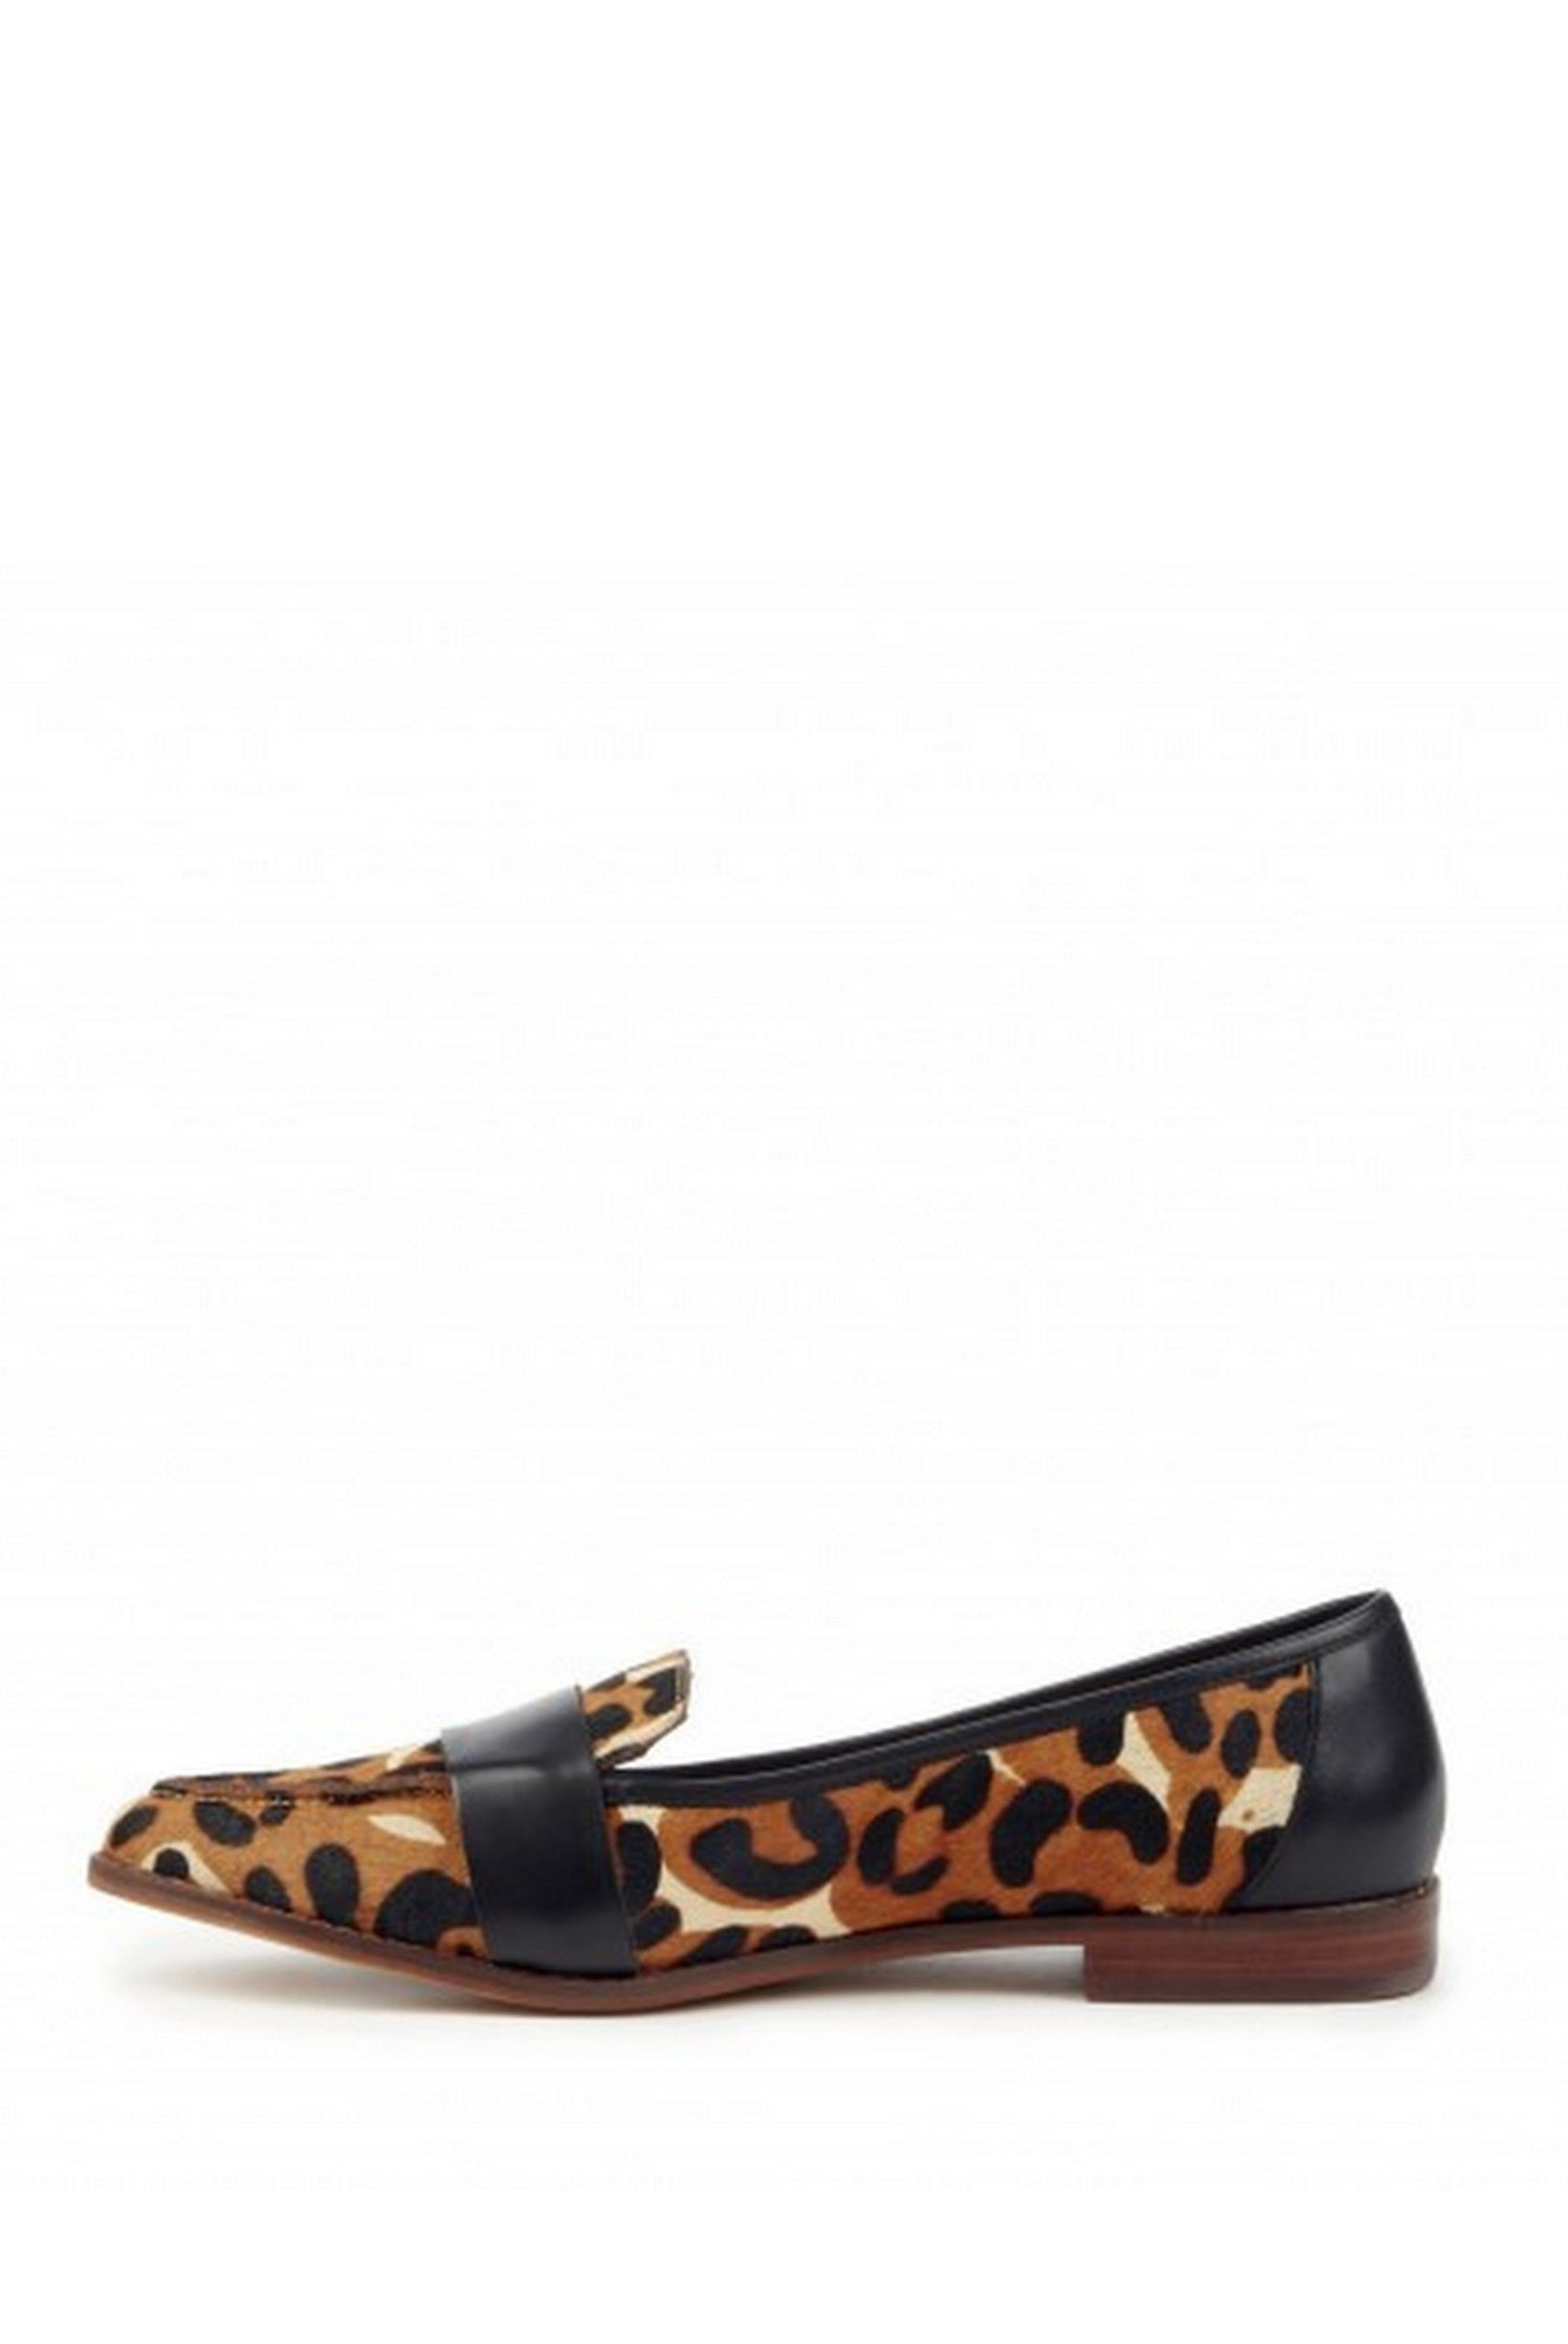 4 Sole Society Edie Leopard Flats at reddressboutique.com